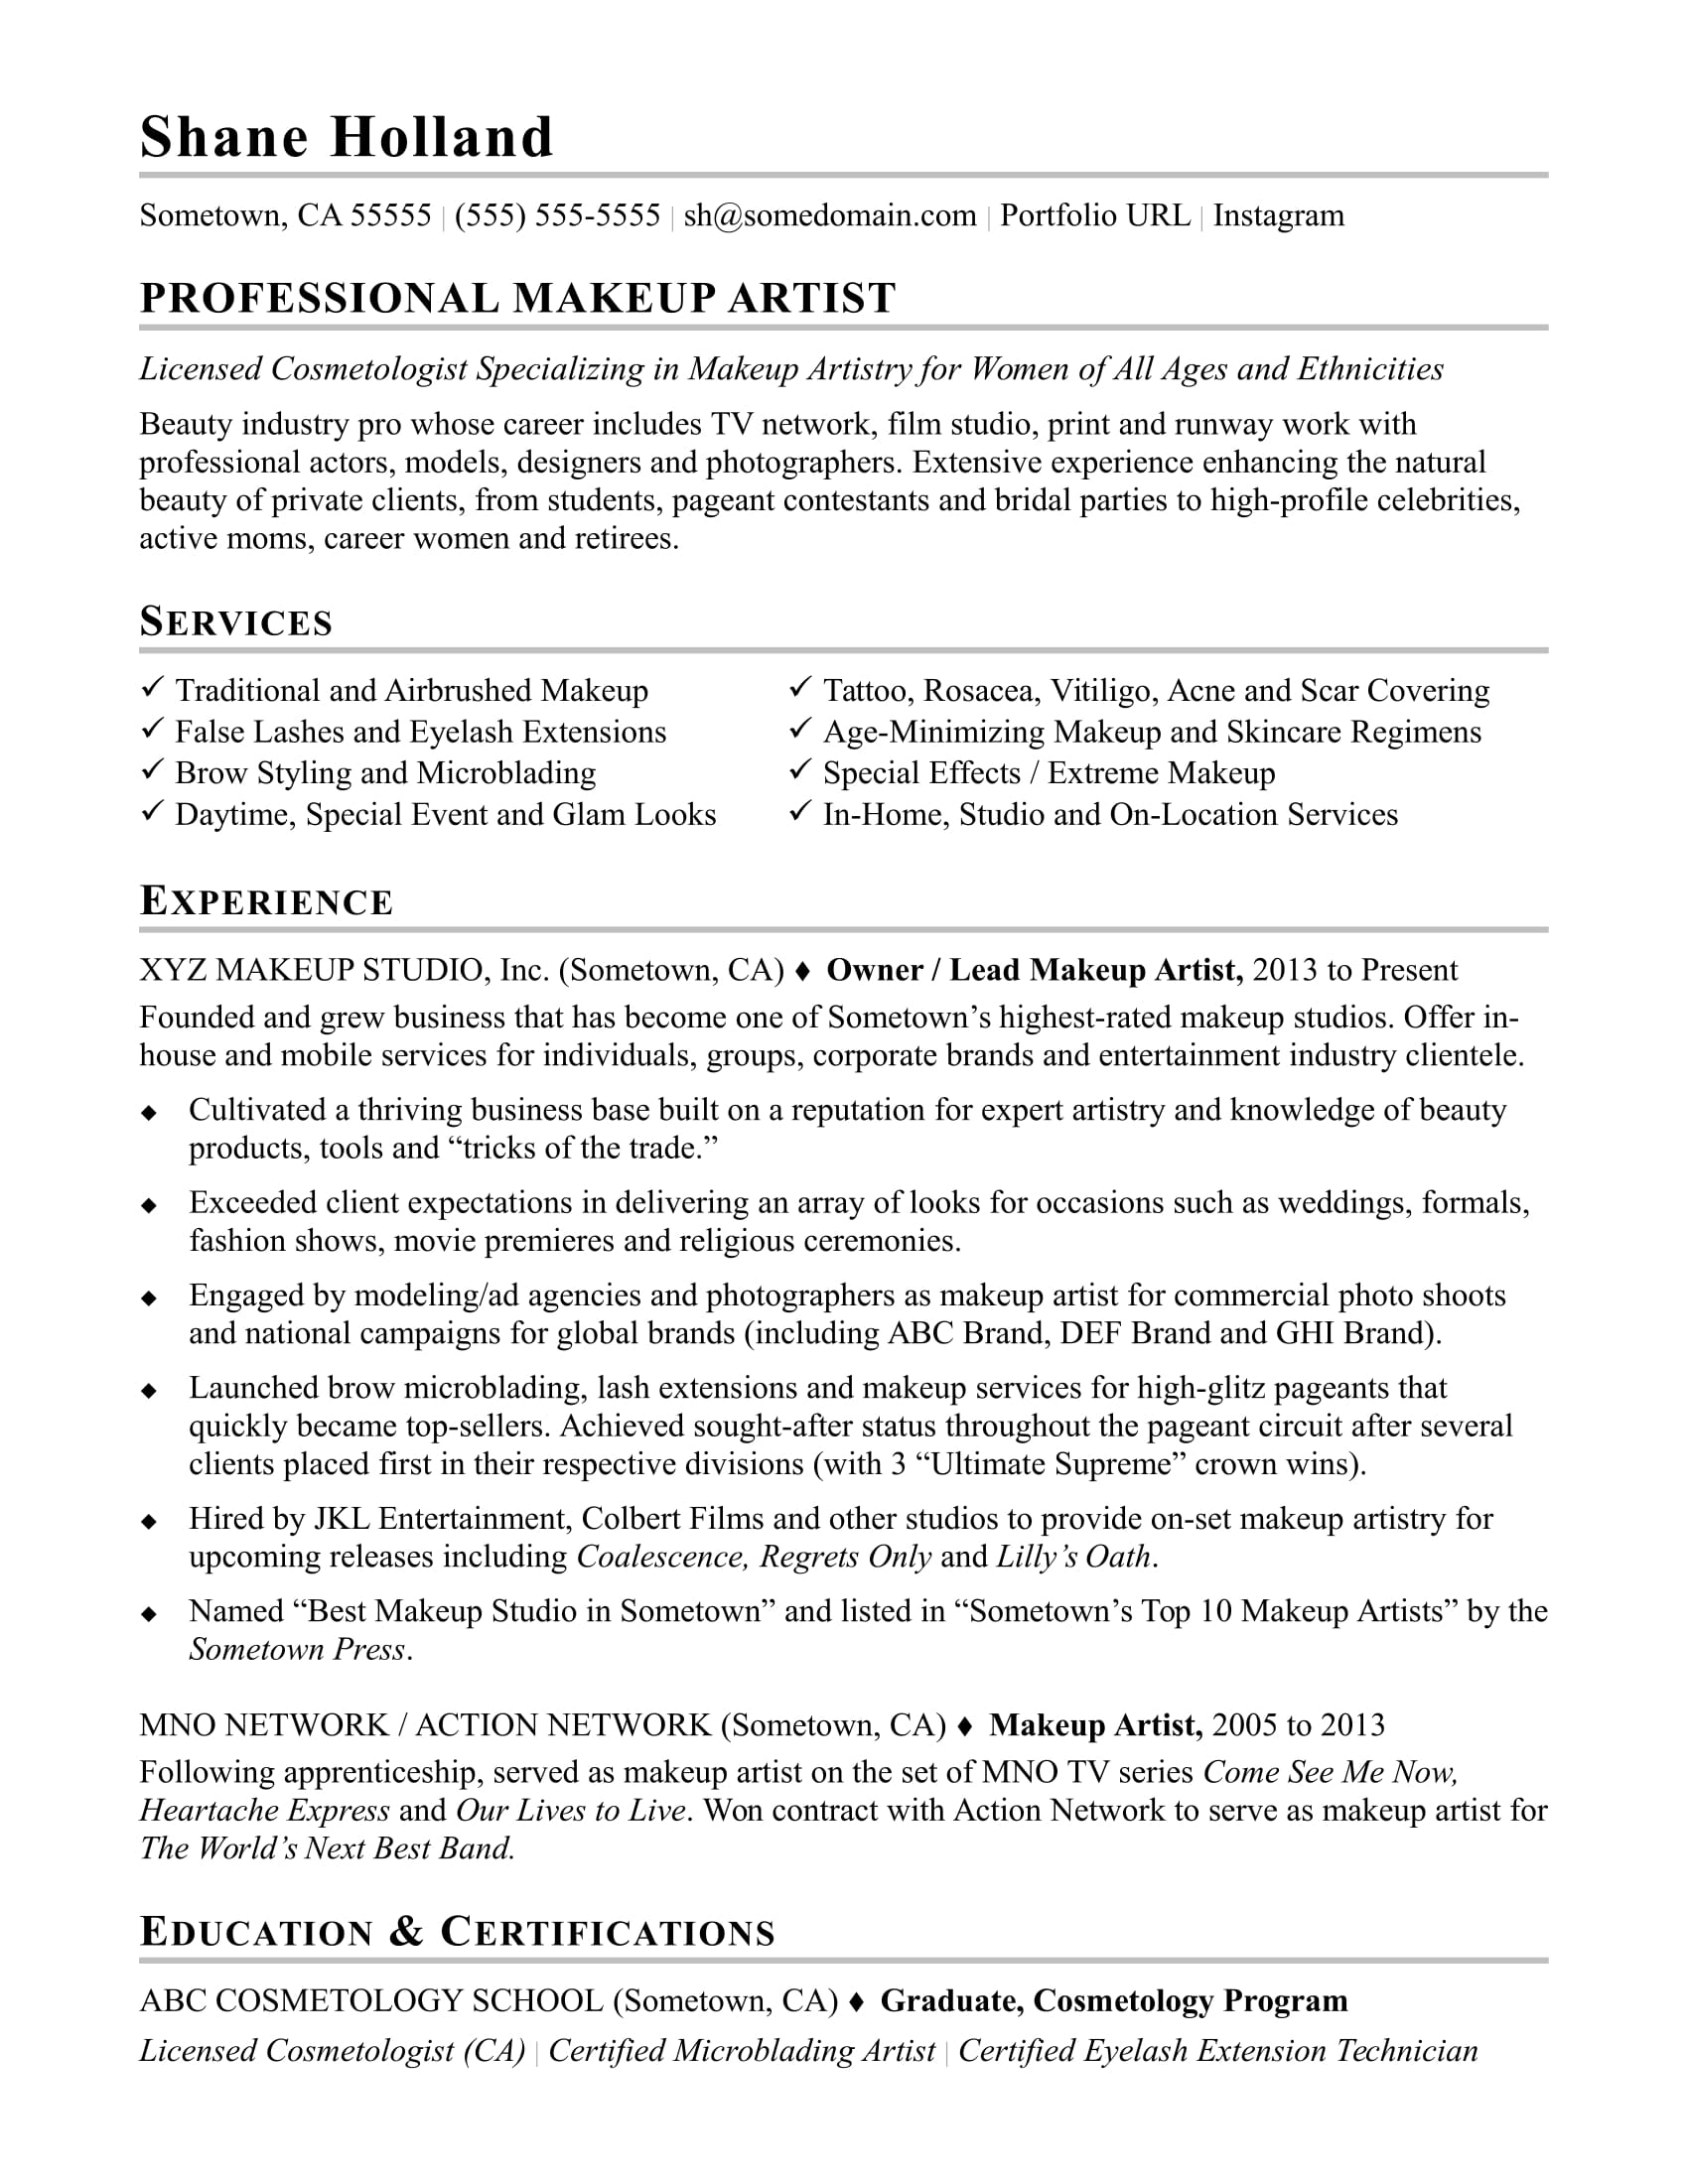 Makeup artist resume sample monster makeup artist resume sample yelopaper Choice Image